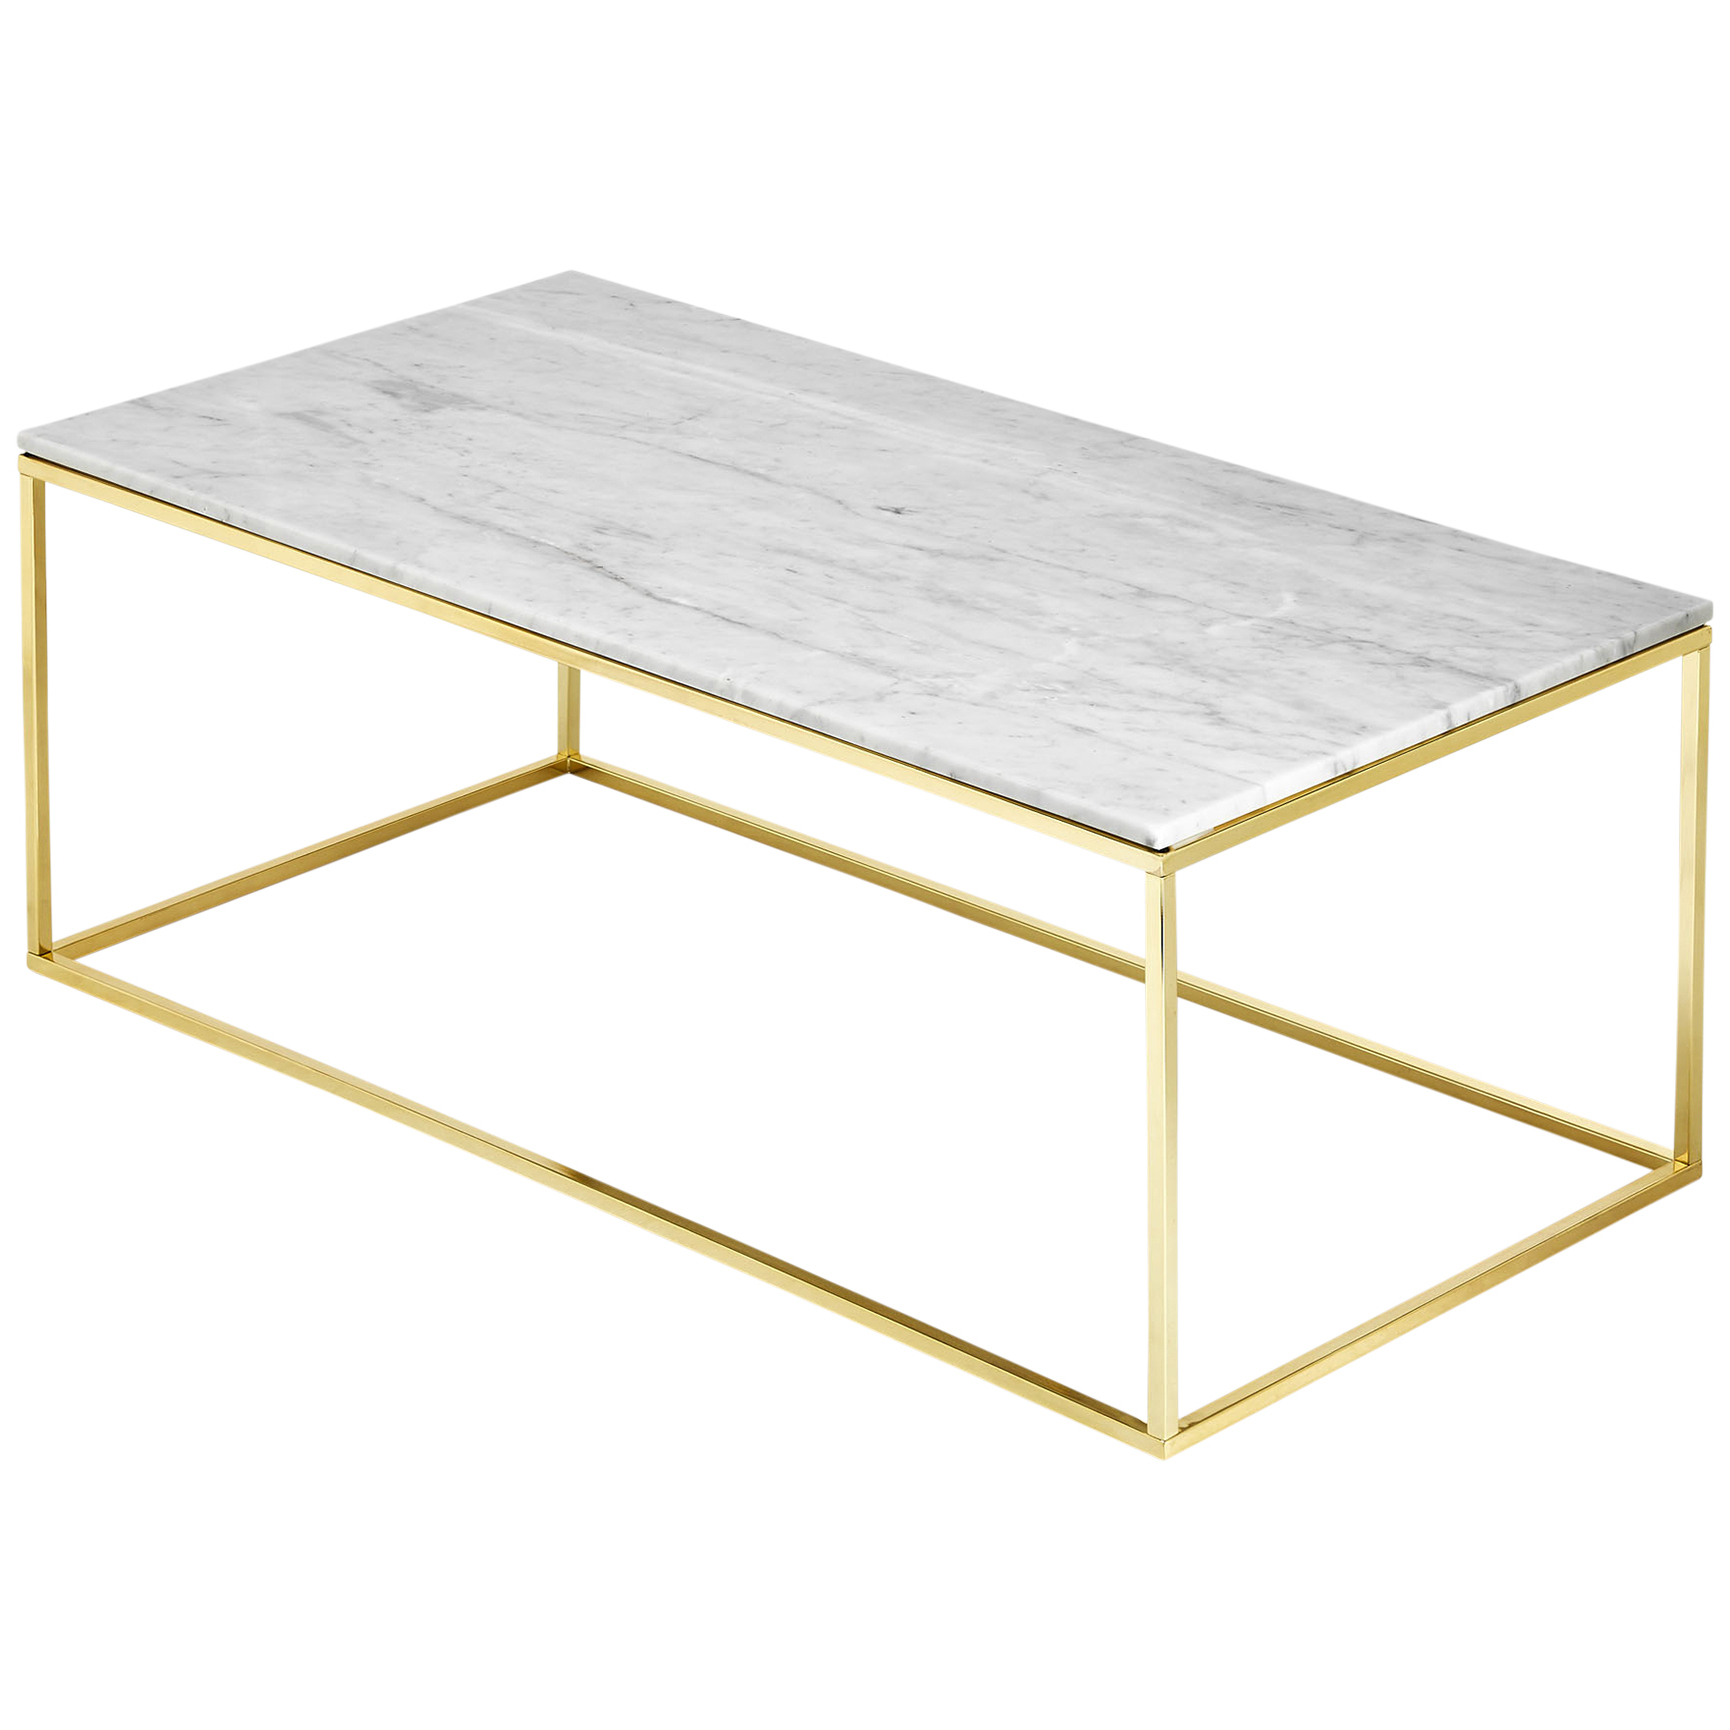 Current Modern Marble Iron Coffee Tables Regarding Estudio Furniture Como White Marble Coffee Table & Reviews (View 5 of 20)